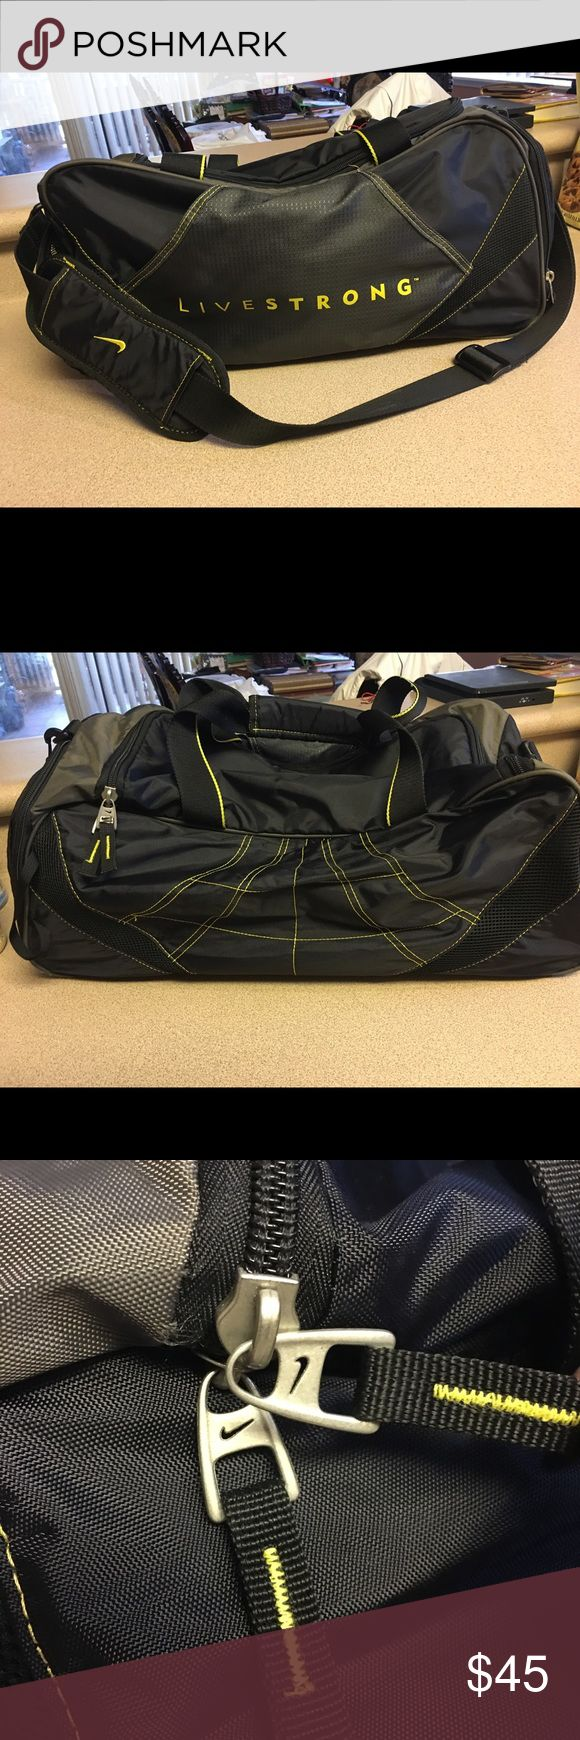 Nike Livestrong Black and Yellow Duffel Gym Bag Pre-owned Nike Livestrong Live Strong Black and Yellow Duffel Gym Bag Lance Armstrong Nike Bags Duffel Bags